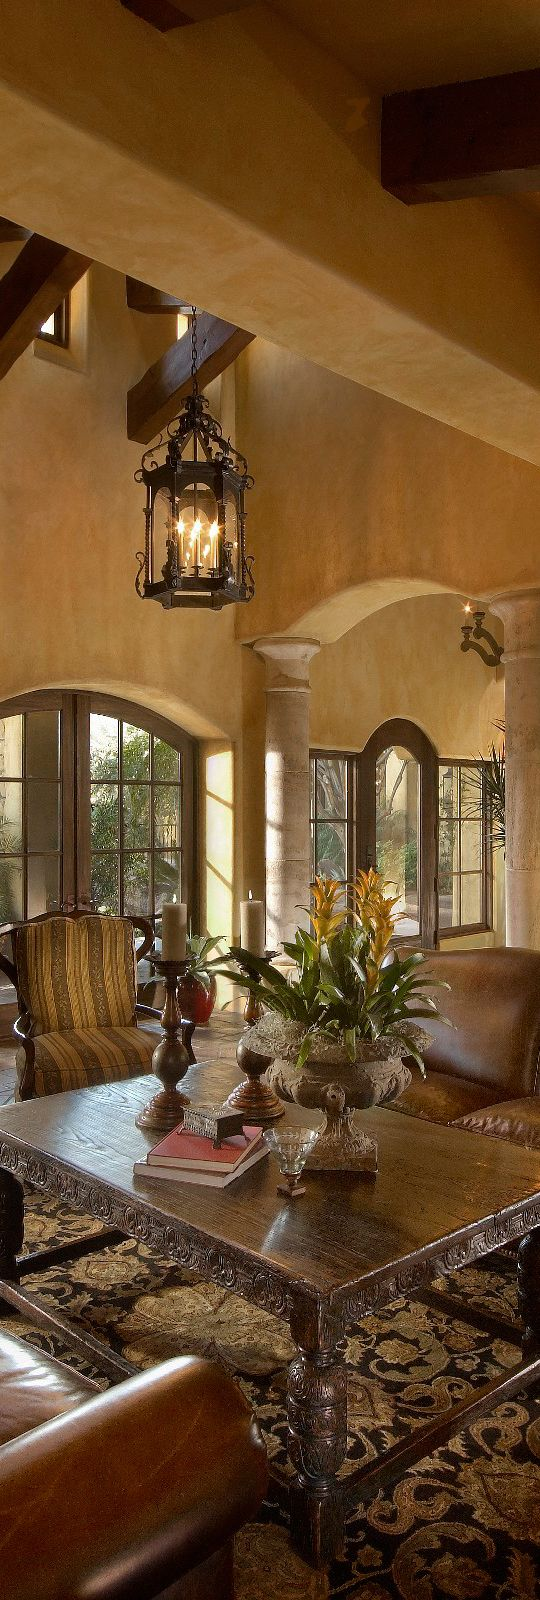 Cozy sitting area. Love all the arched windows. Mediterranean | Tuscany | Old World Style